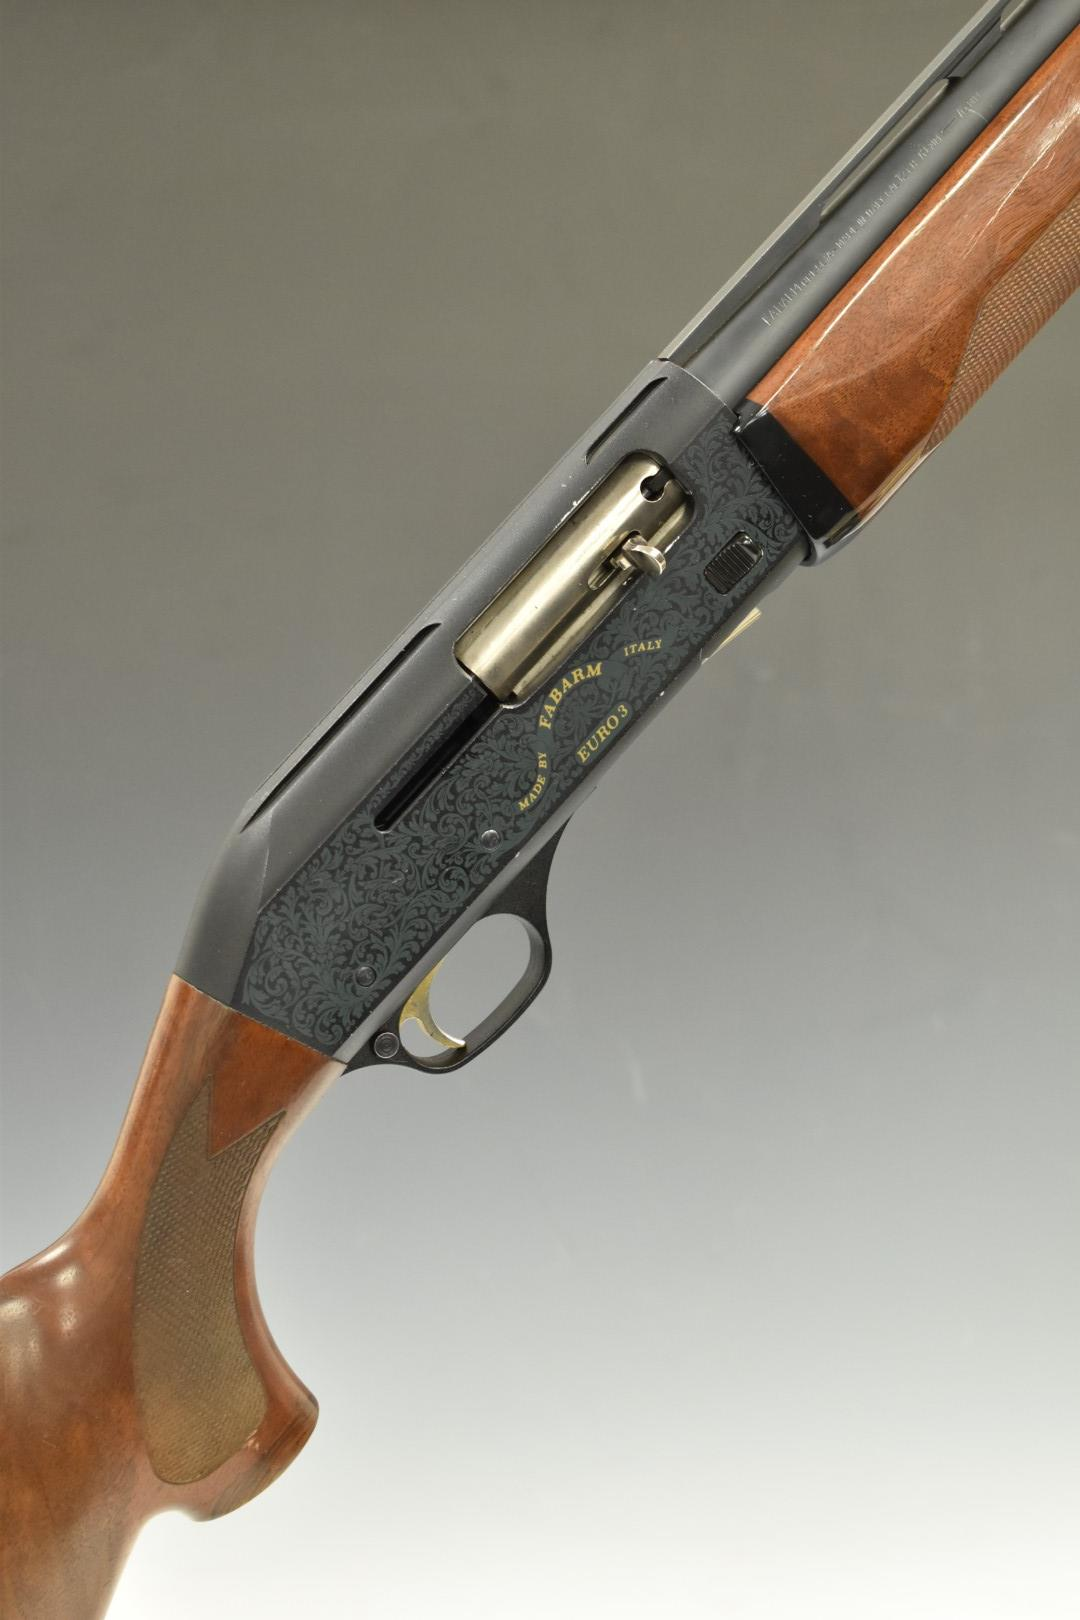 Fabarm Euro 3 12 bore semi-automatic shotgun with ornate detail and gold naming to the lock,